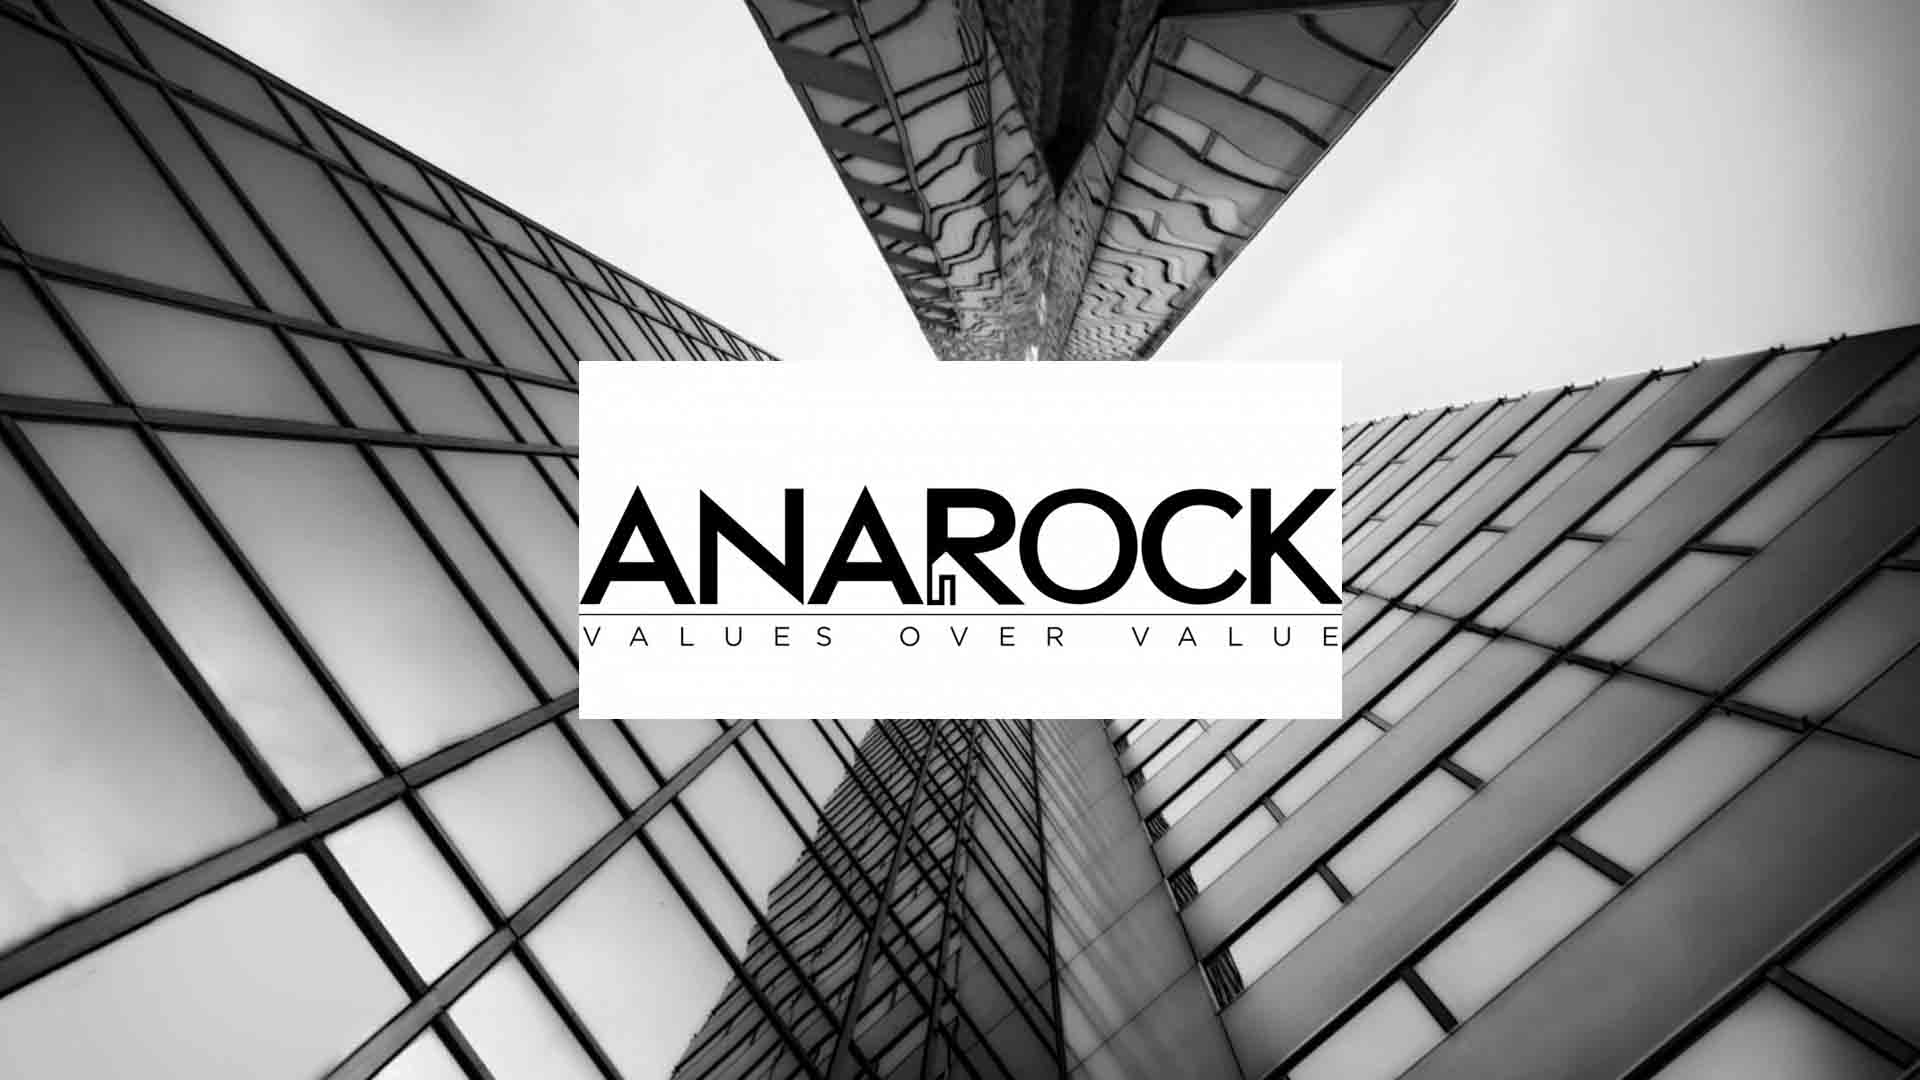 ANAROCK Launches Strategic Channel Partner Business Vertical